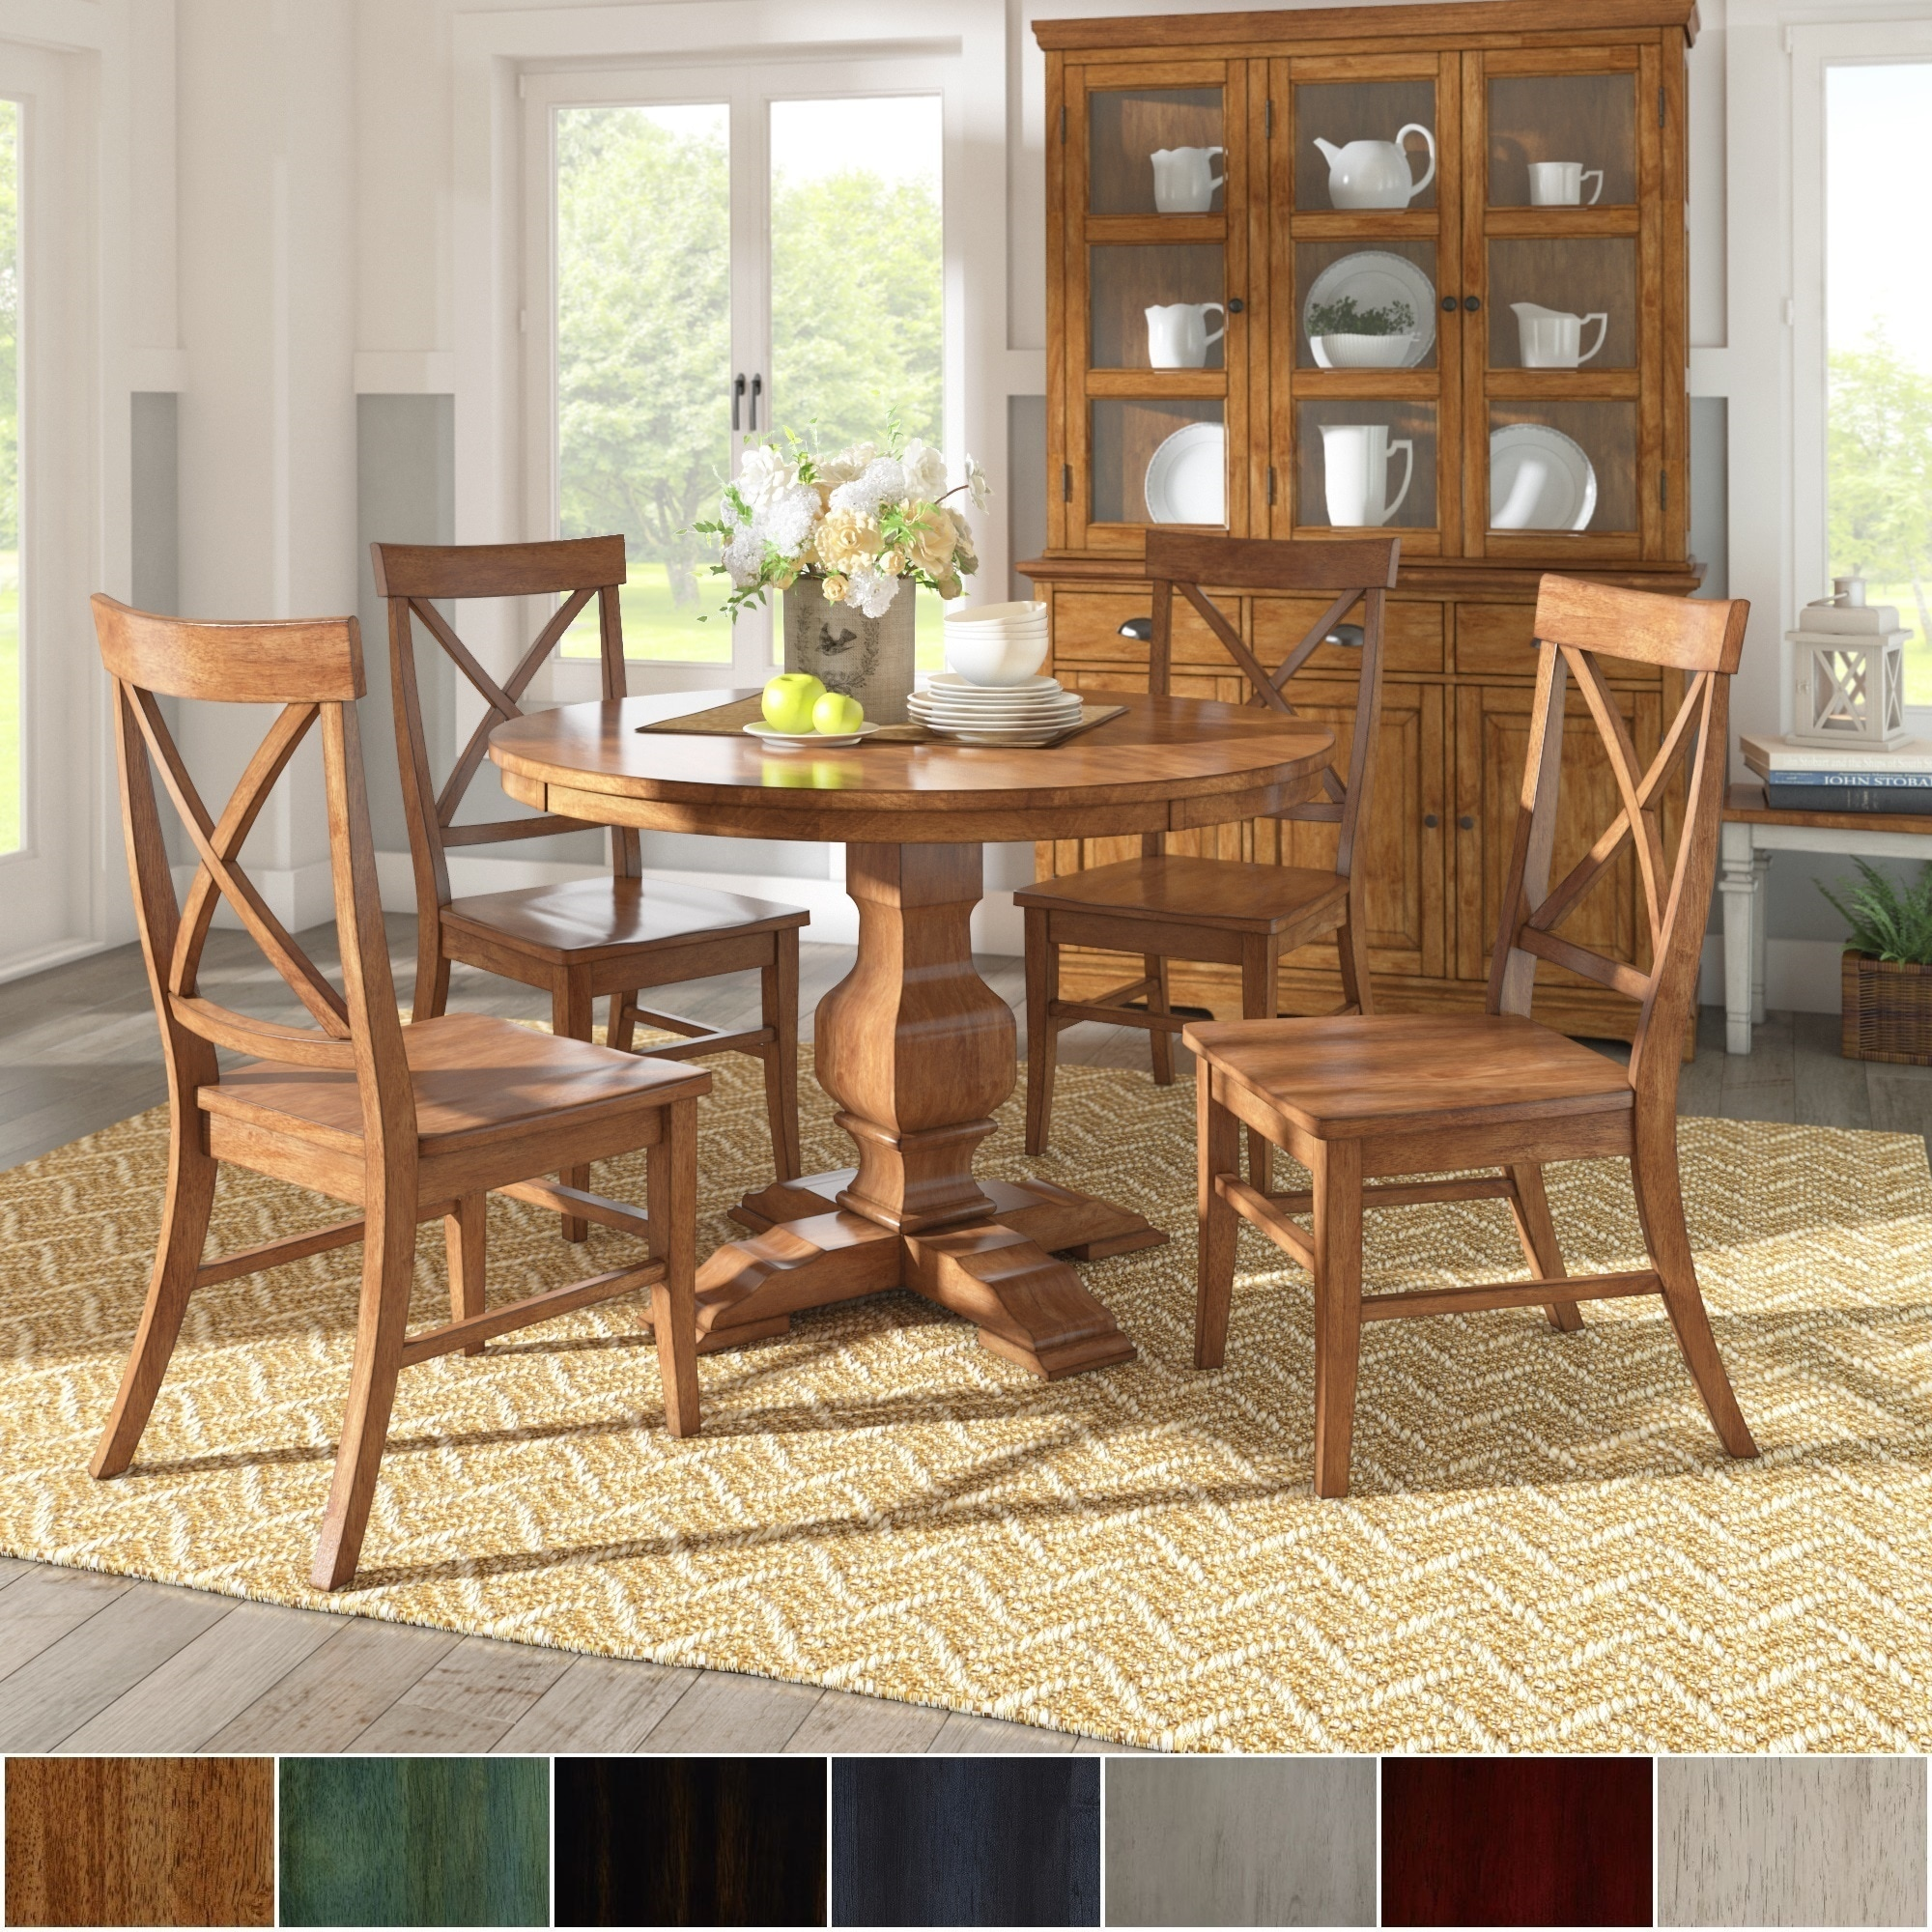 Eleanor oak finish wood 5 piece round table x back chairs dining set by inspire q classic